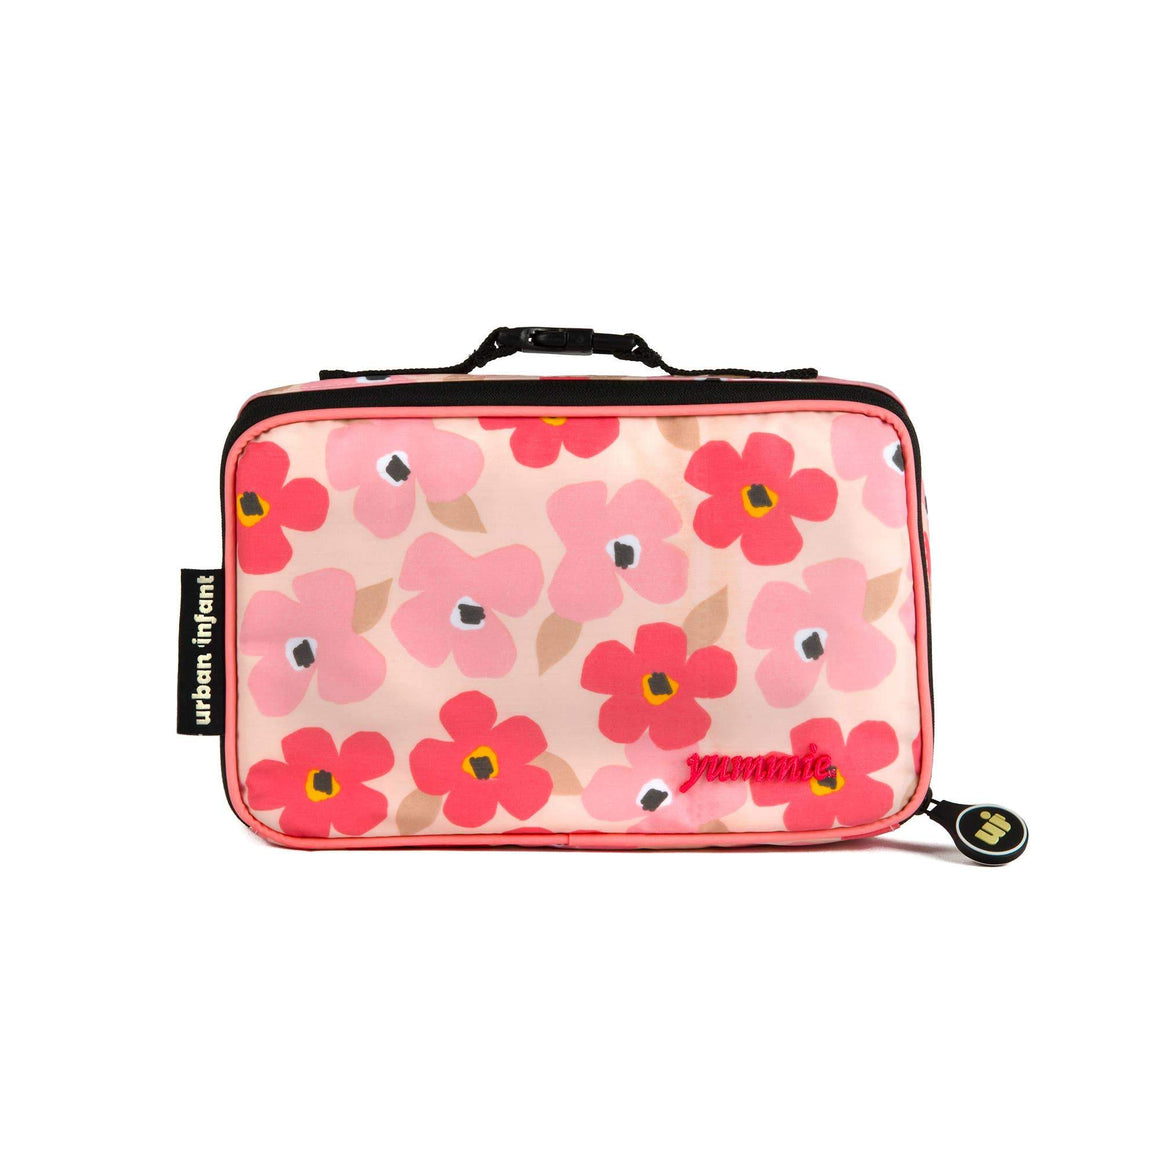 Urban Infant - Urban Infant Yummie Toddler Lunch Bag - Poppies Urban Infant